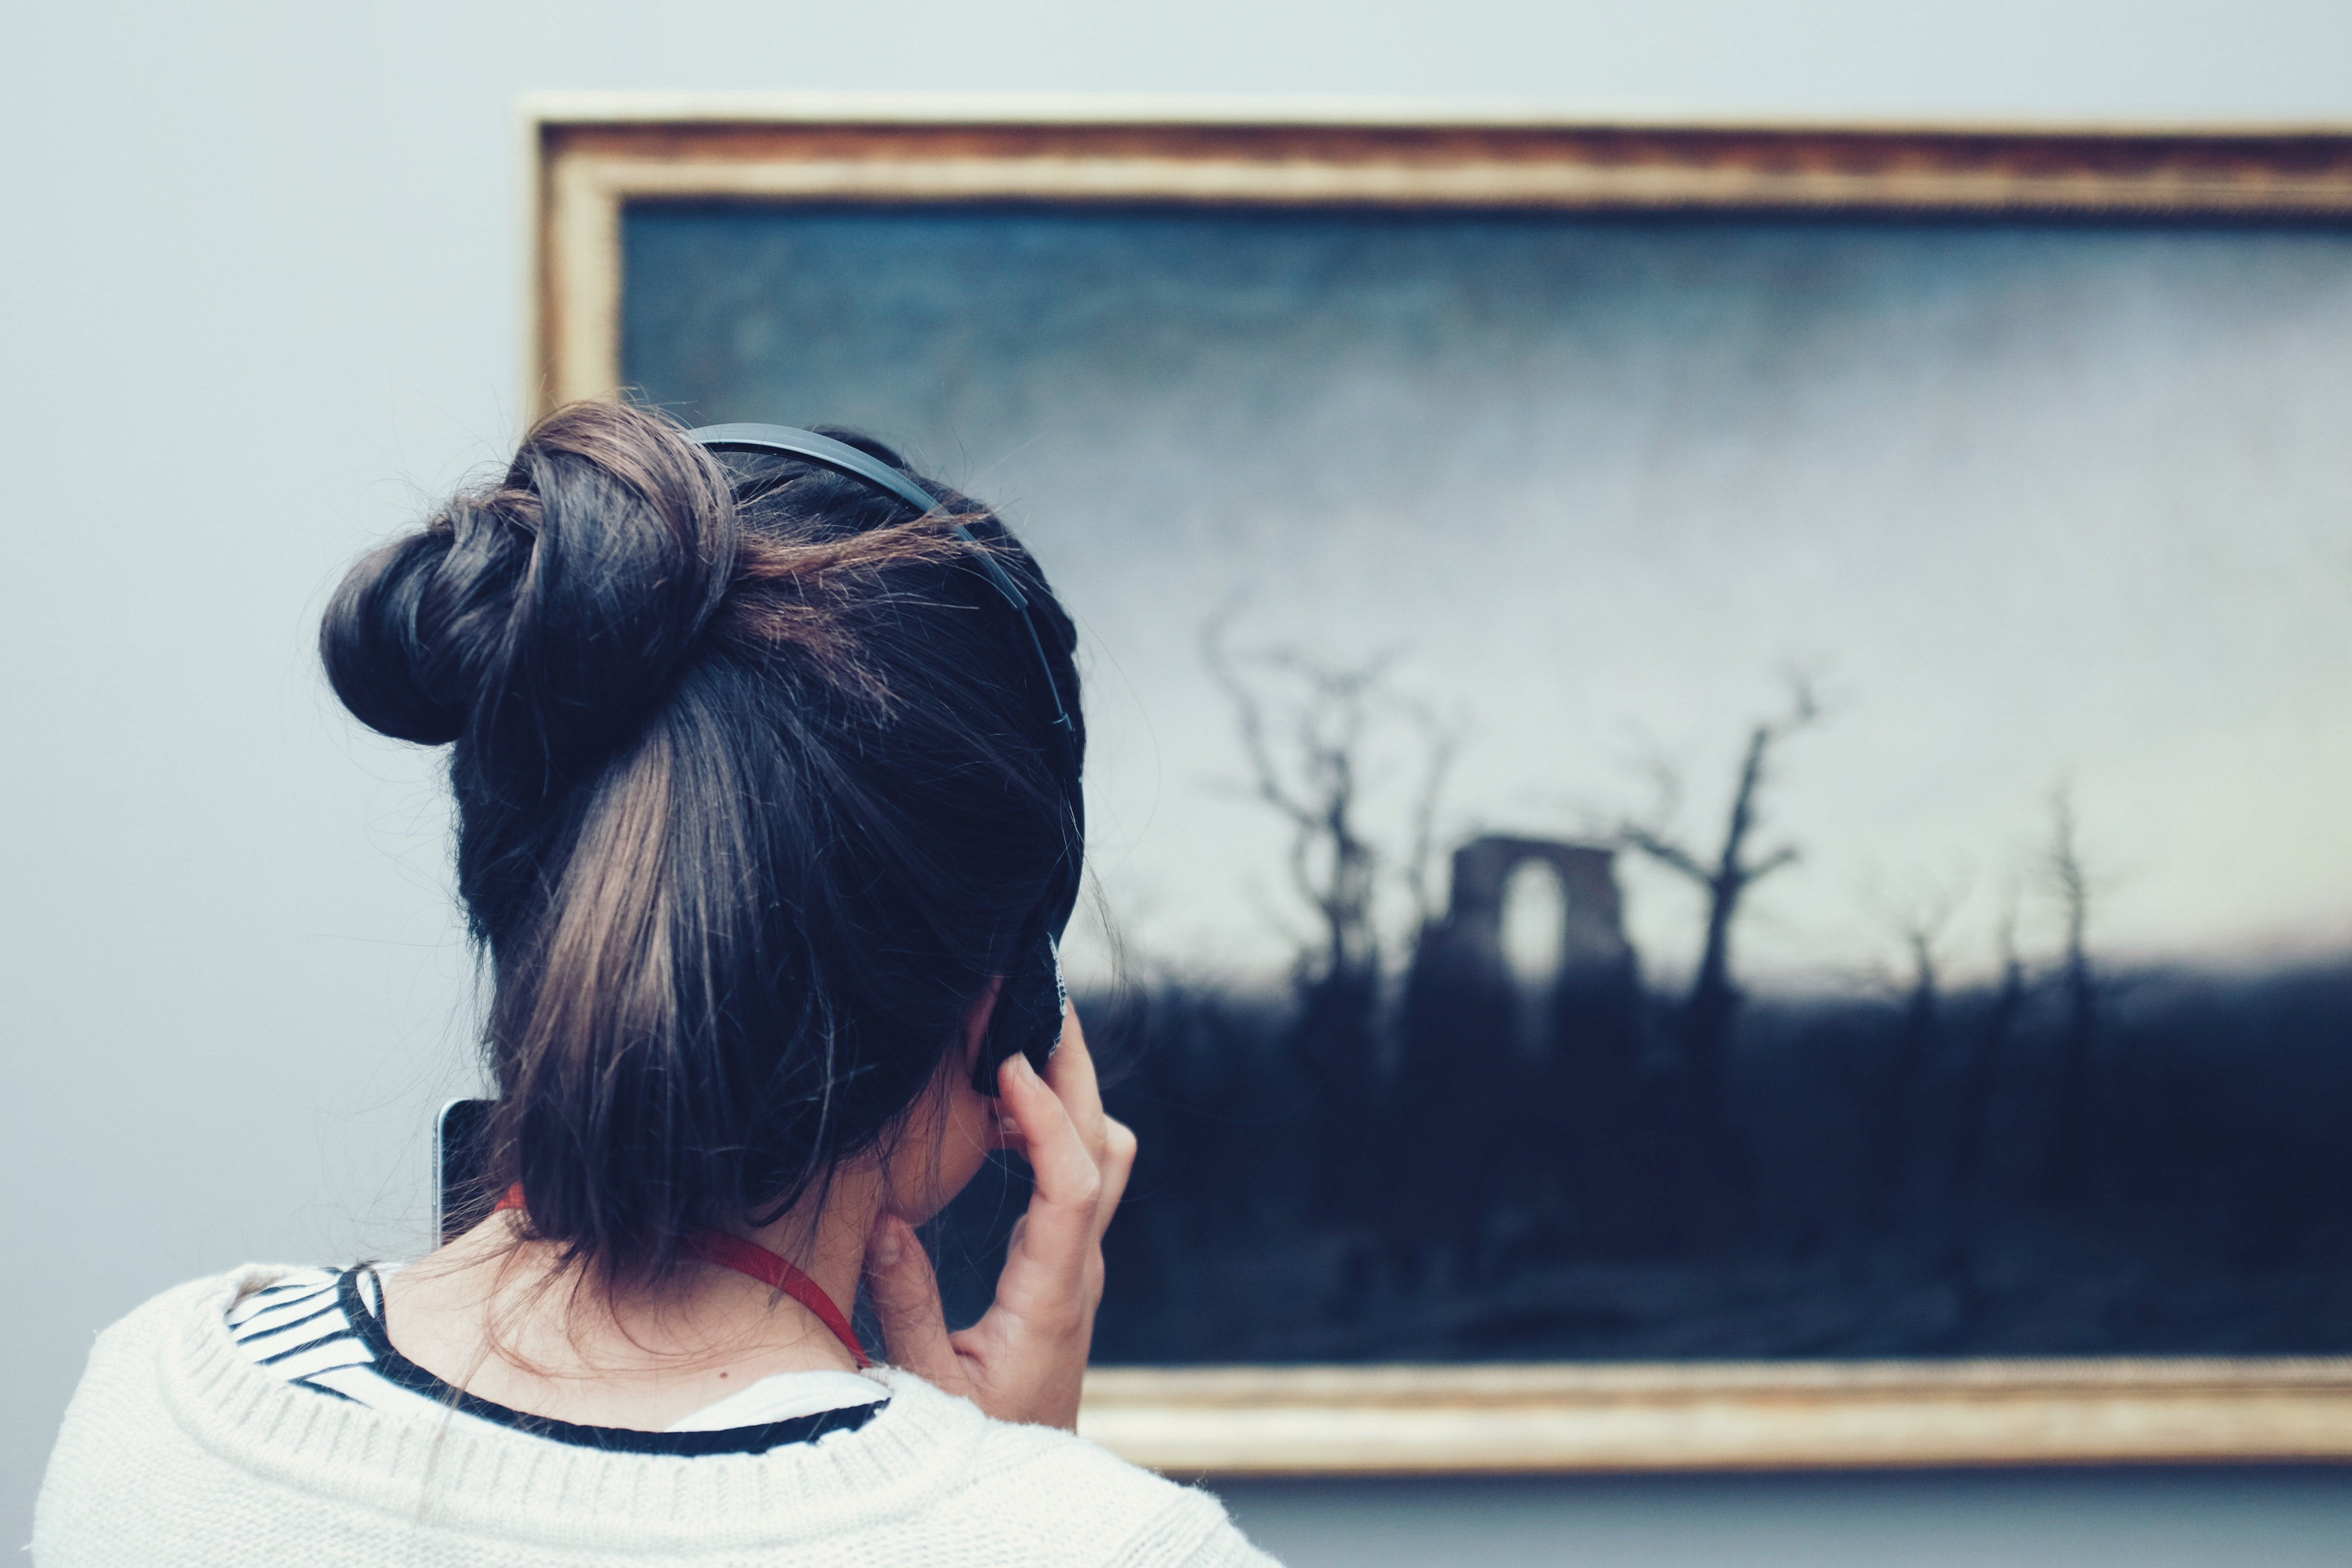 Woman on a museum audio tour looking at a painting and listening through headphones